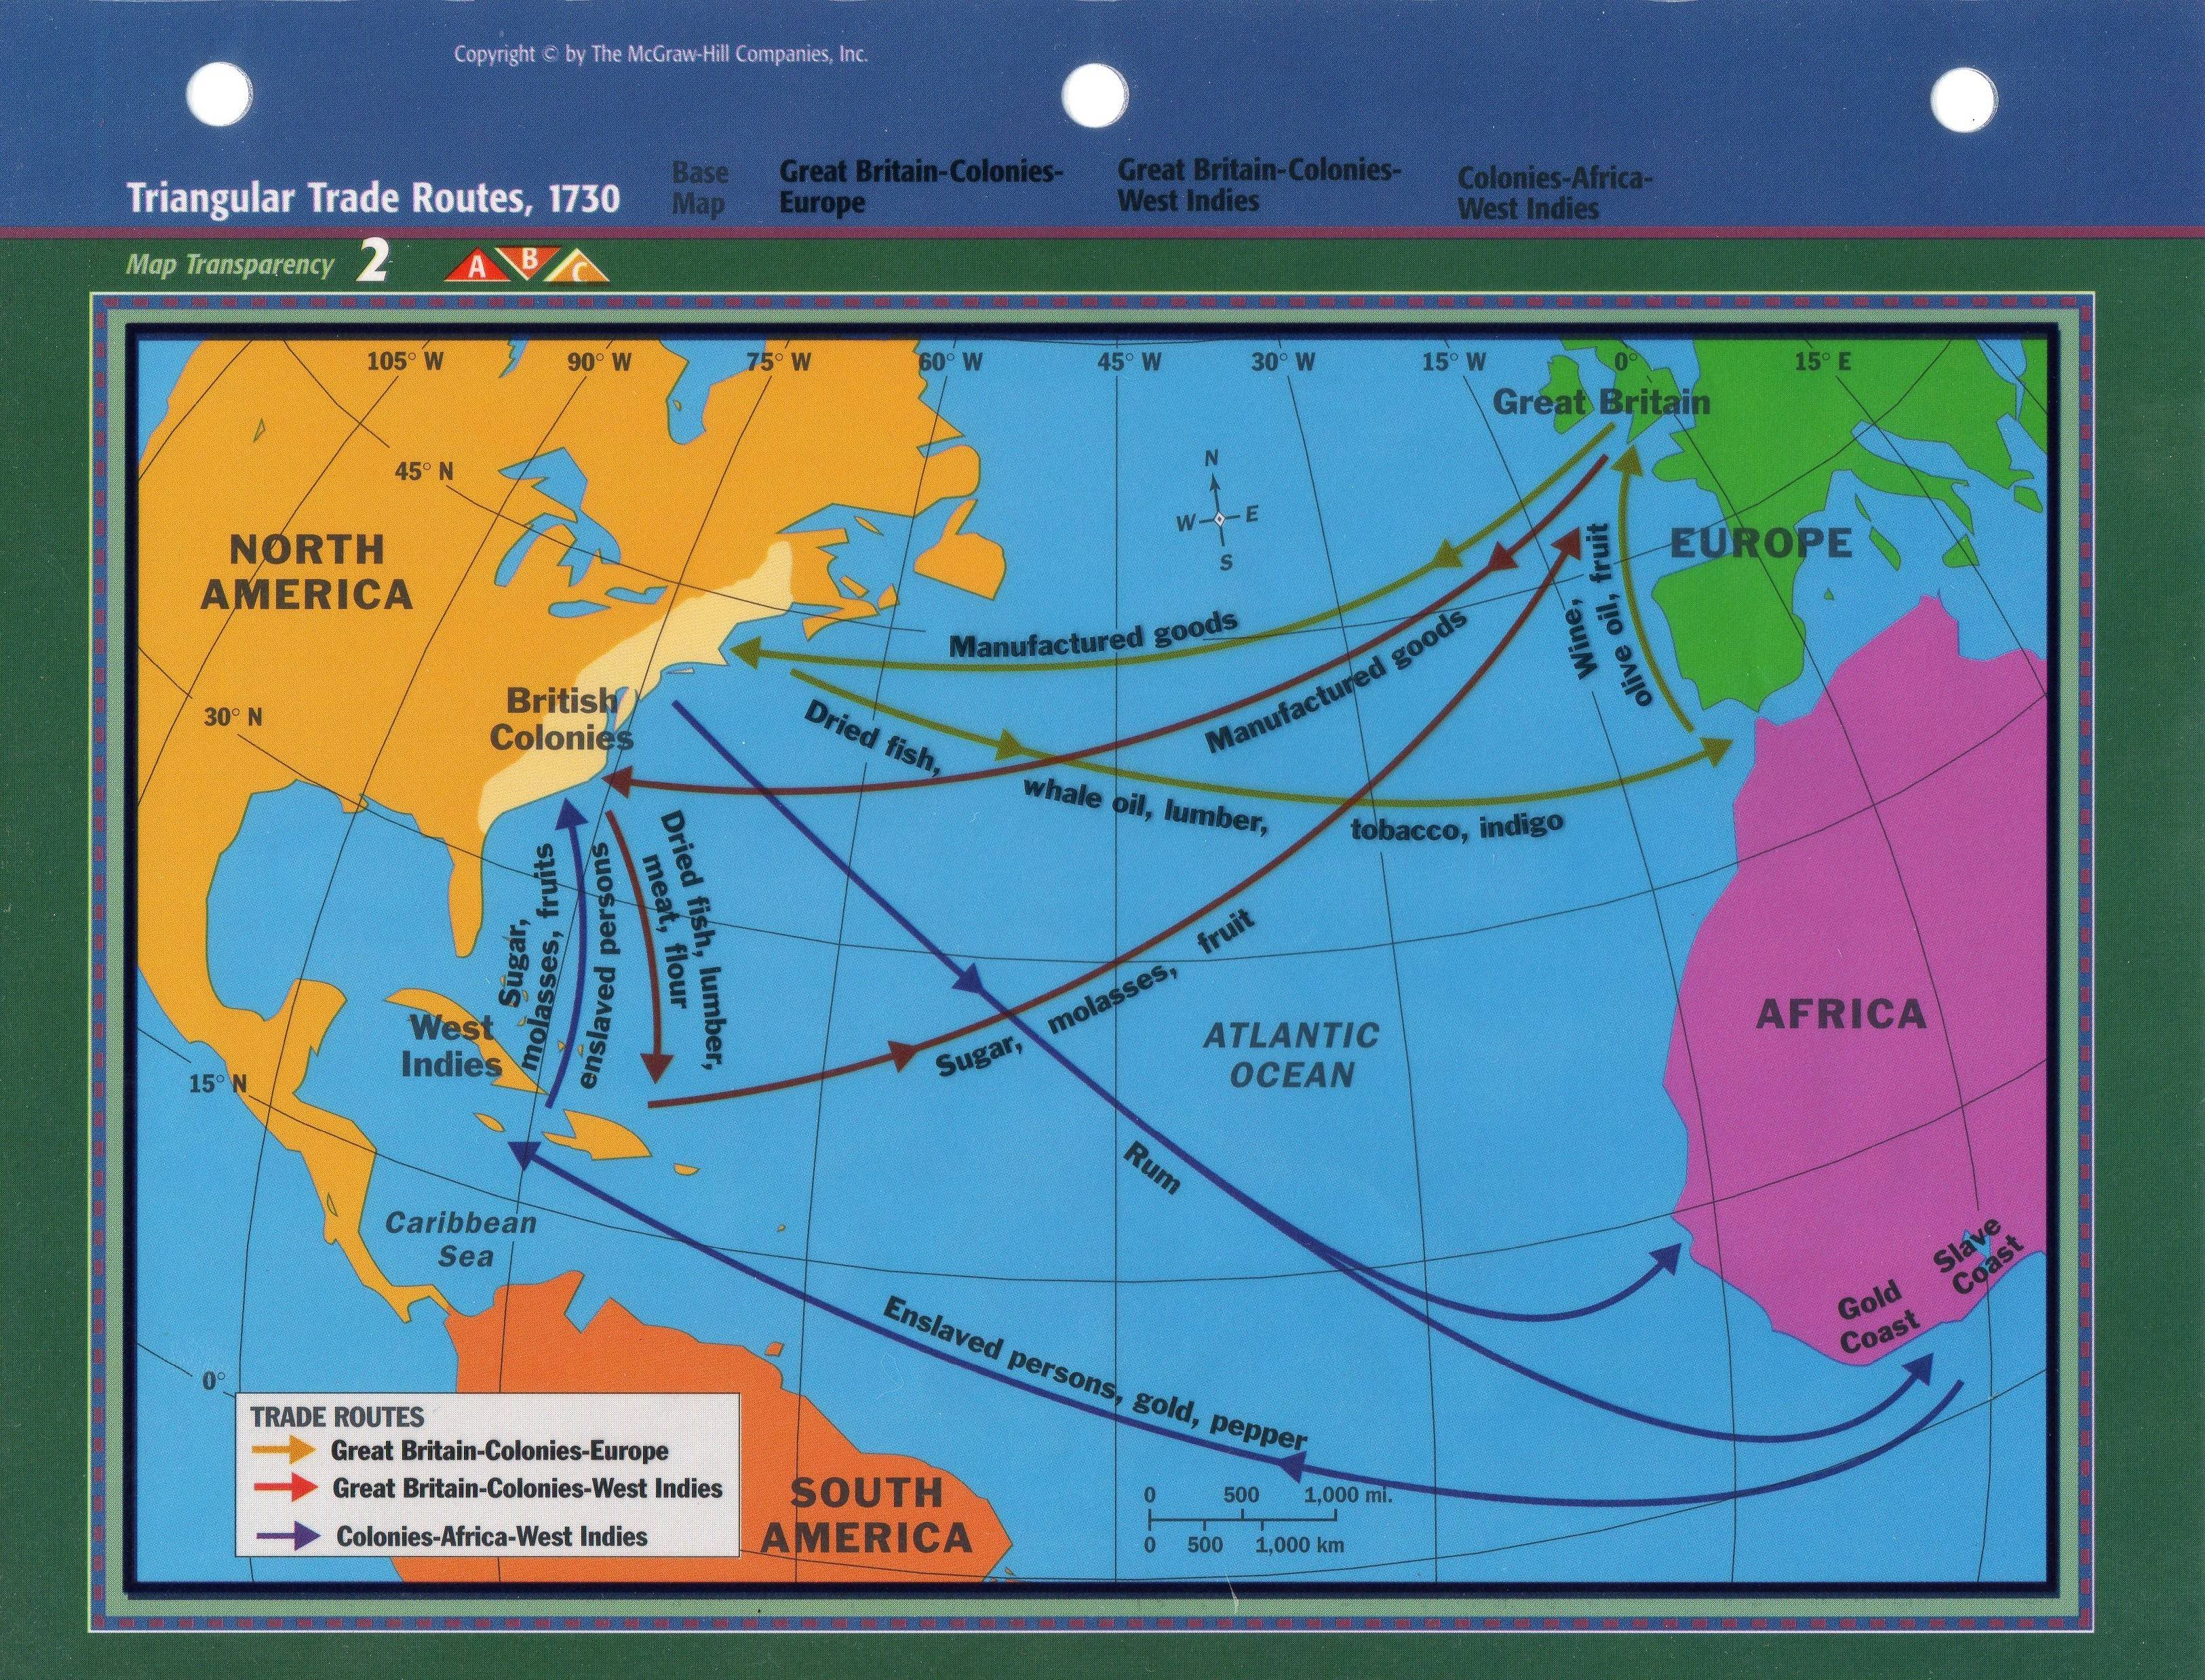 Triangular Trade Routes - Base Map